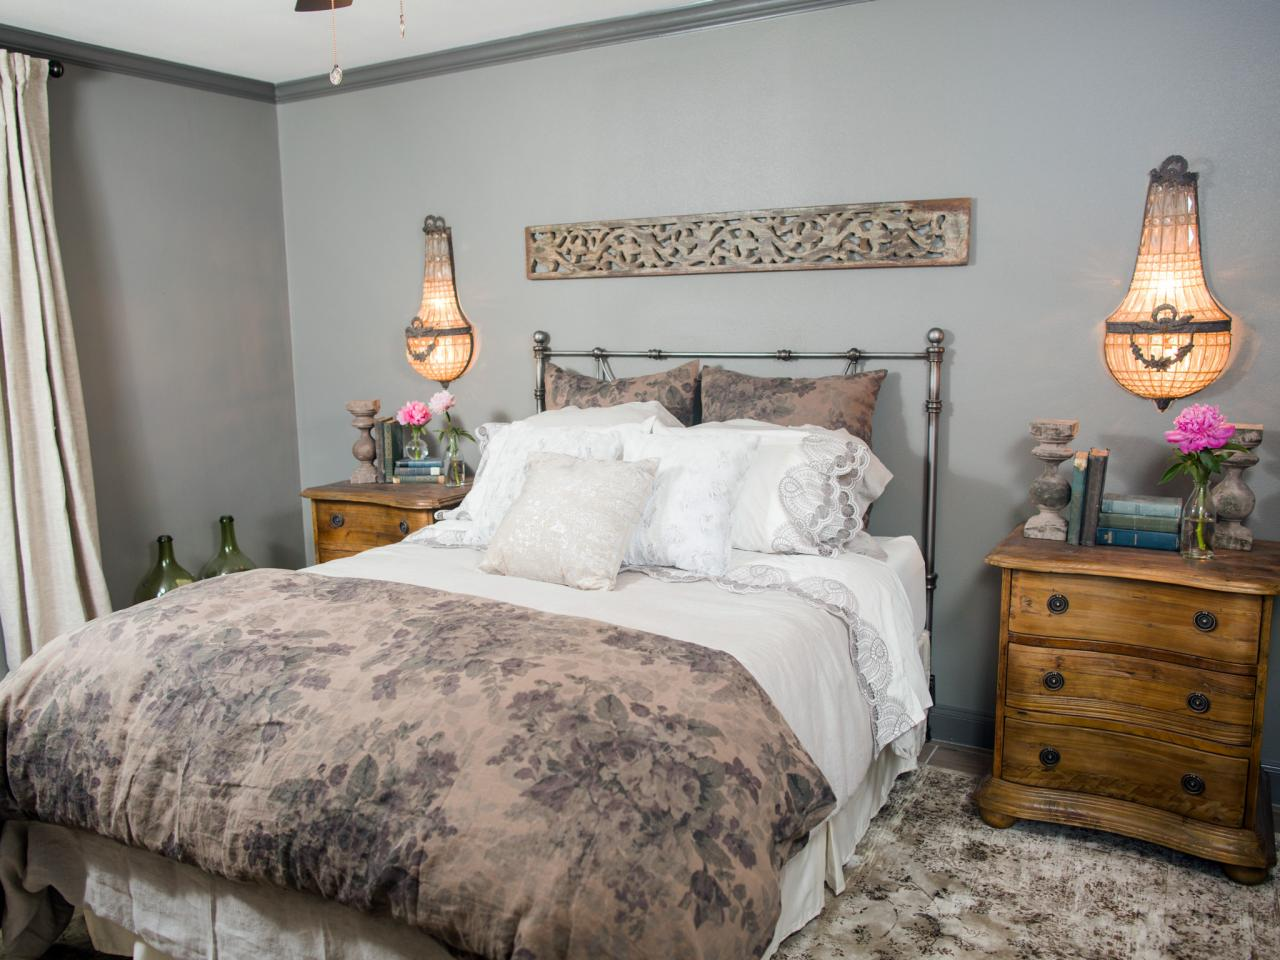 Photos hgtv 39 s fixer upper with chip and joanna gaines hgtv for Bedroom designs by joanna gaines